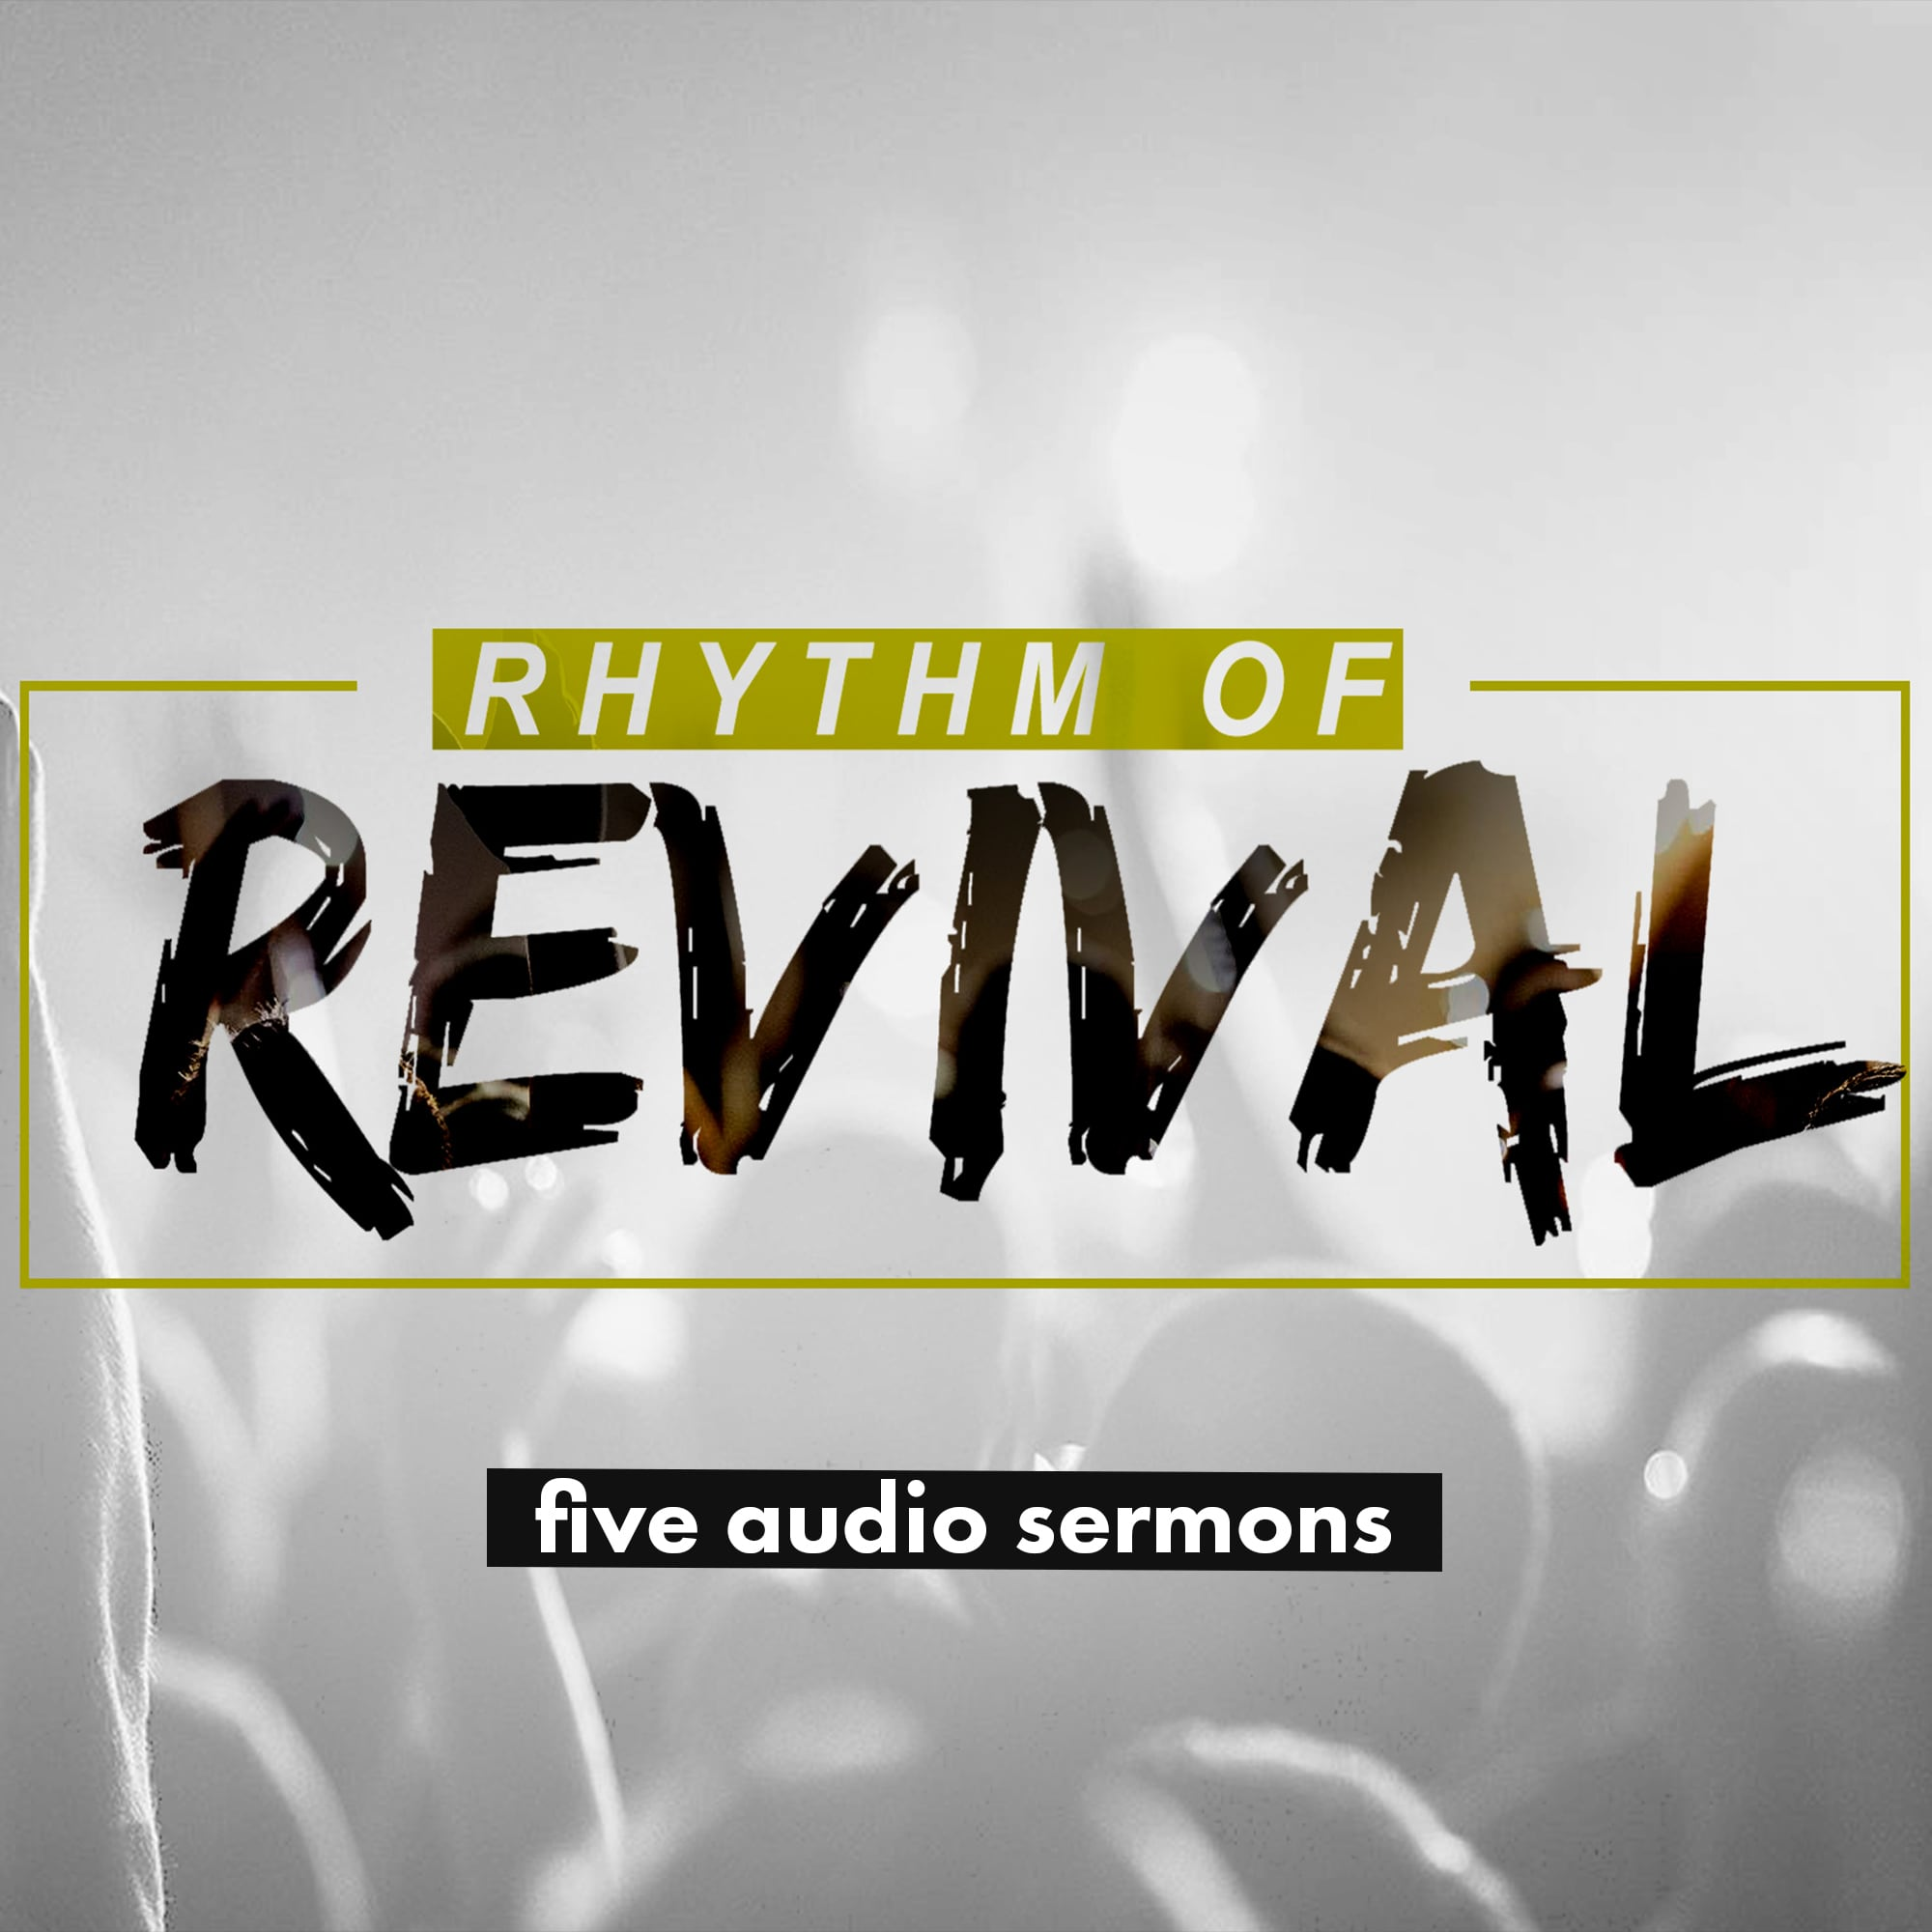 Series: Rhythm of Revival